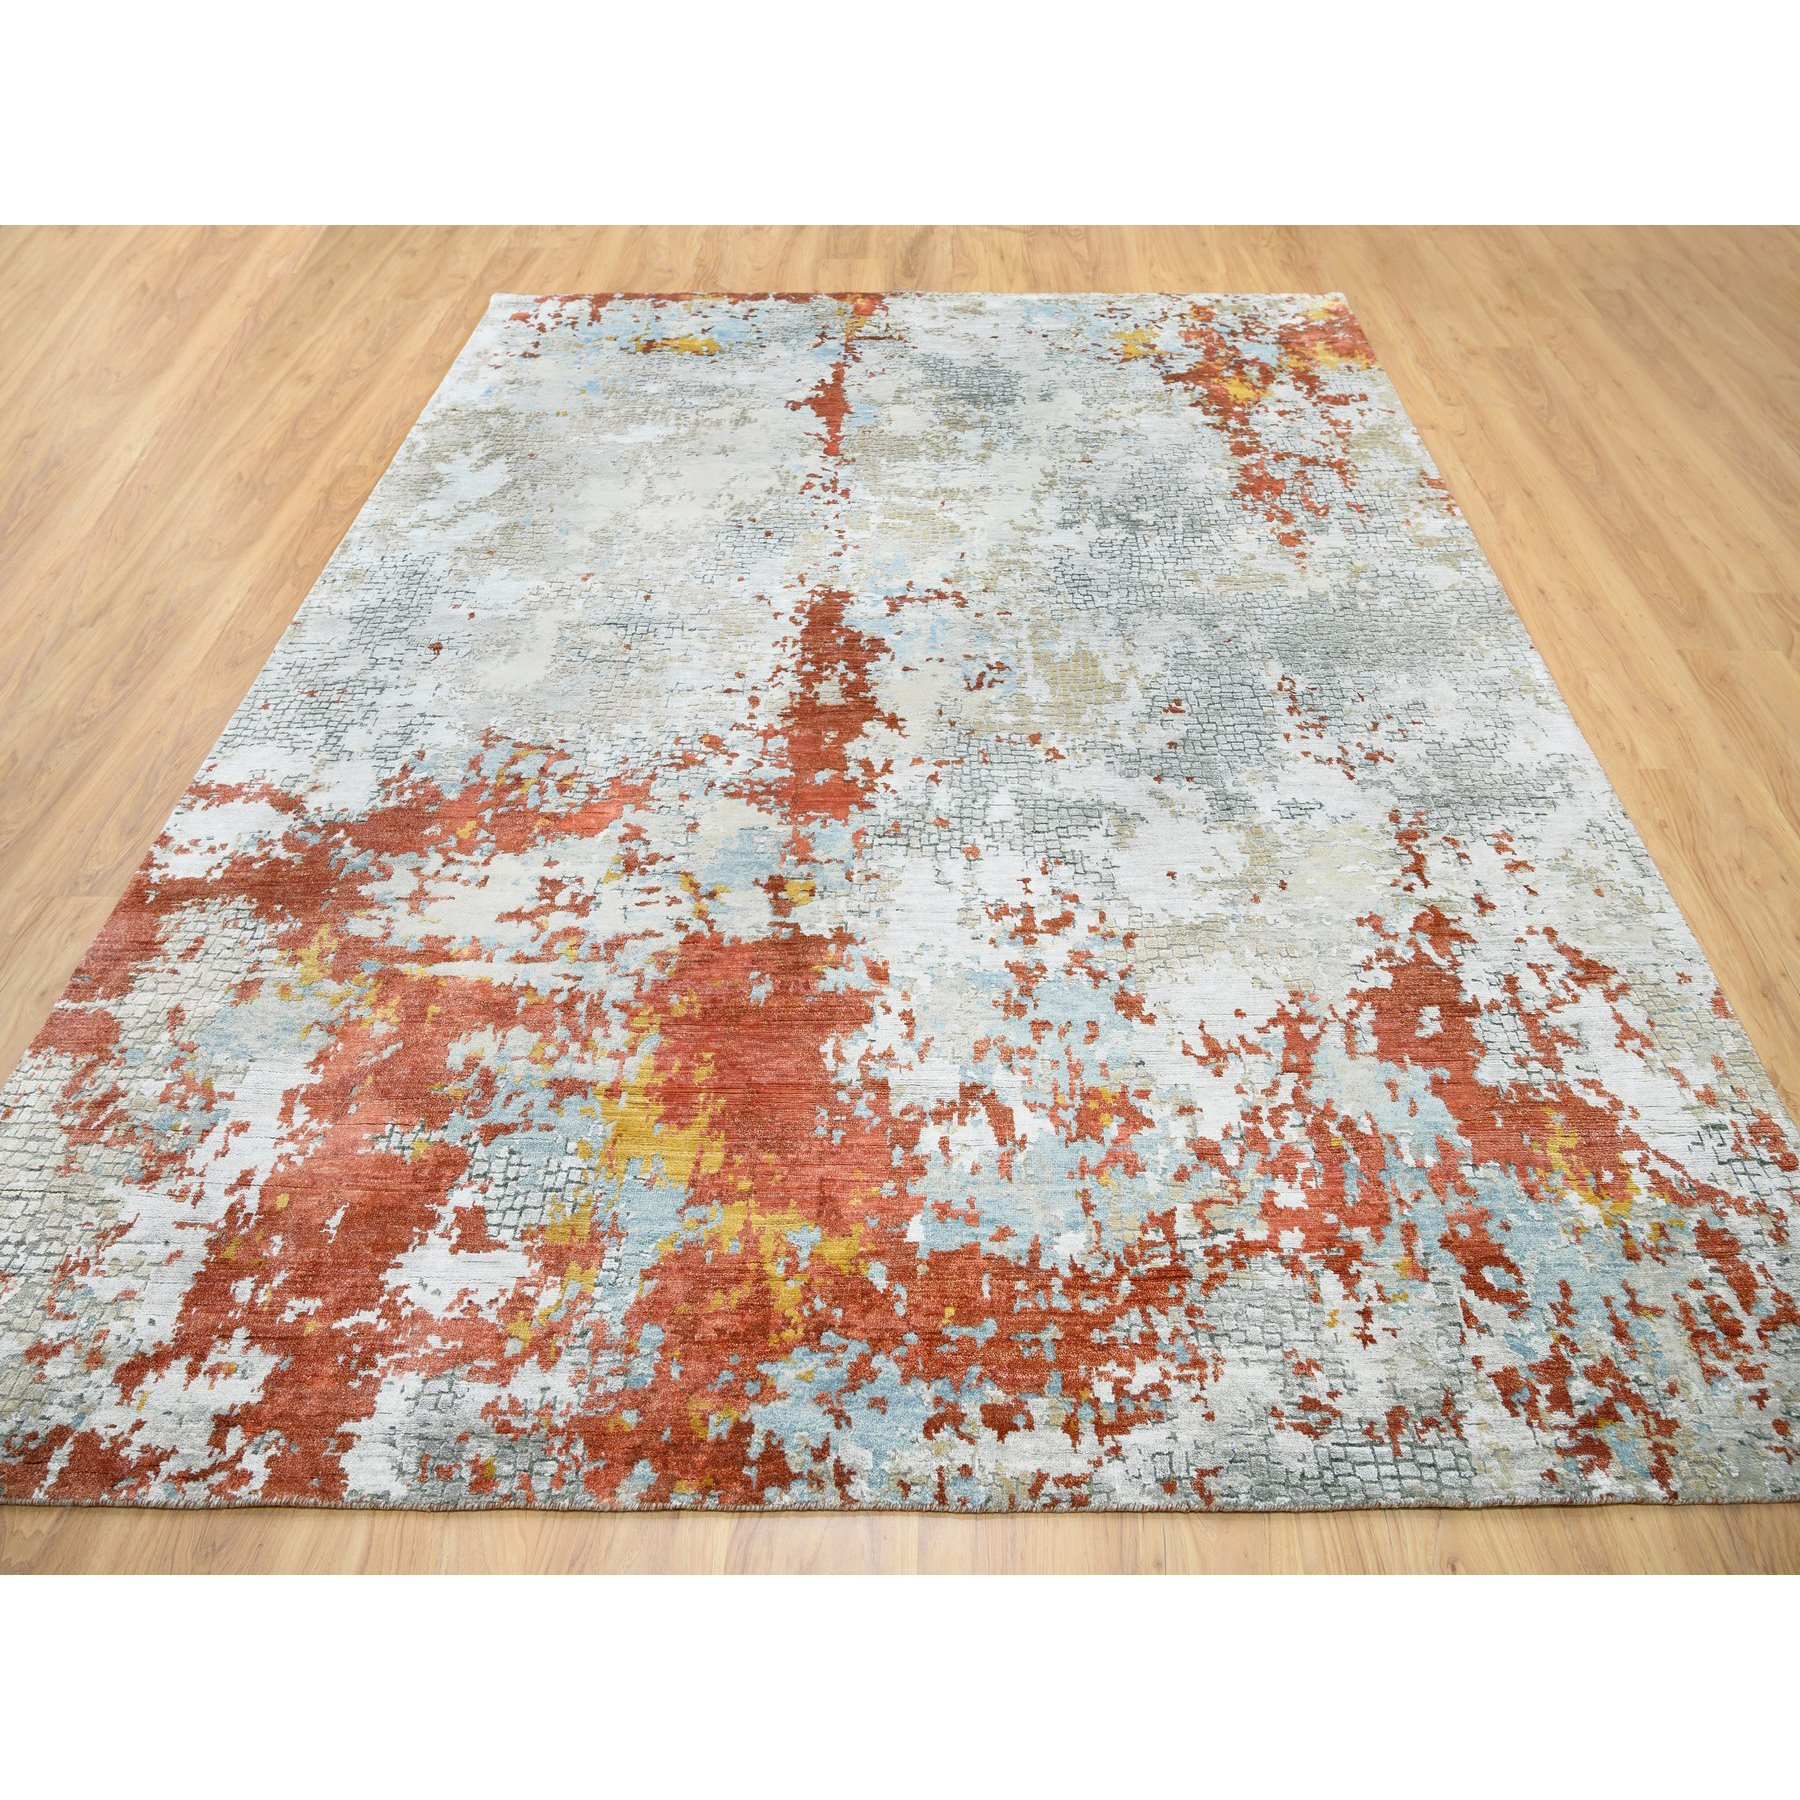 """7'9""""x10' Hand Knotted Wool And Silk Abstract With Fire Mosaic Design Oriental Rug"""